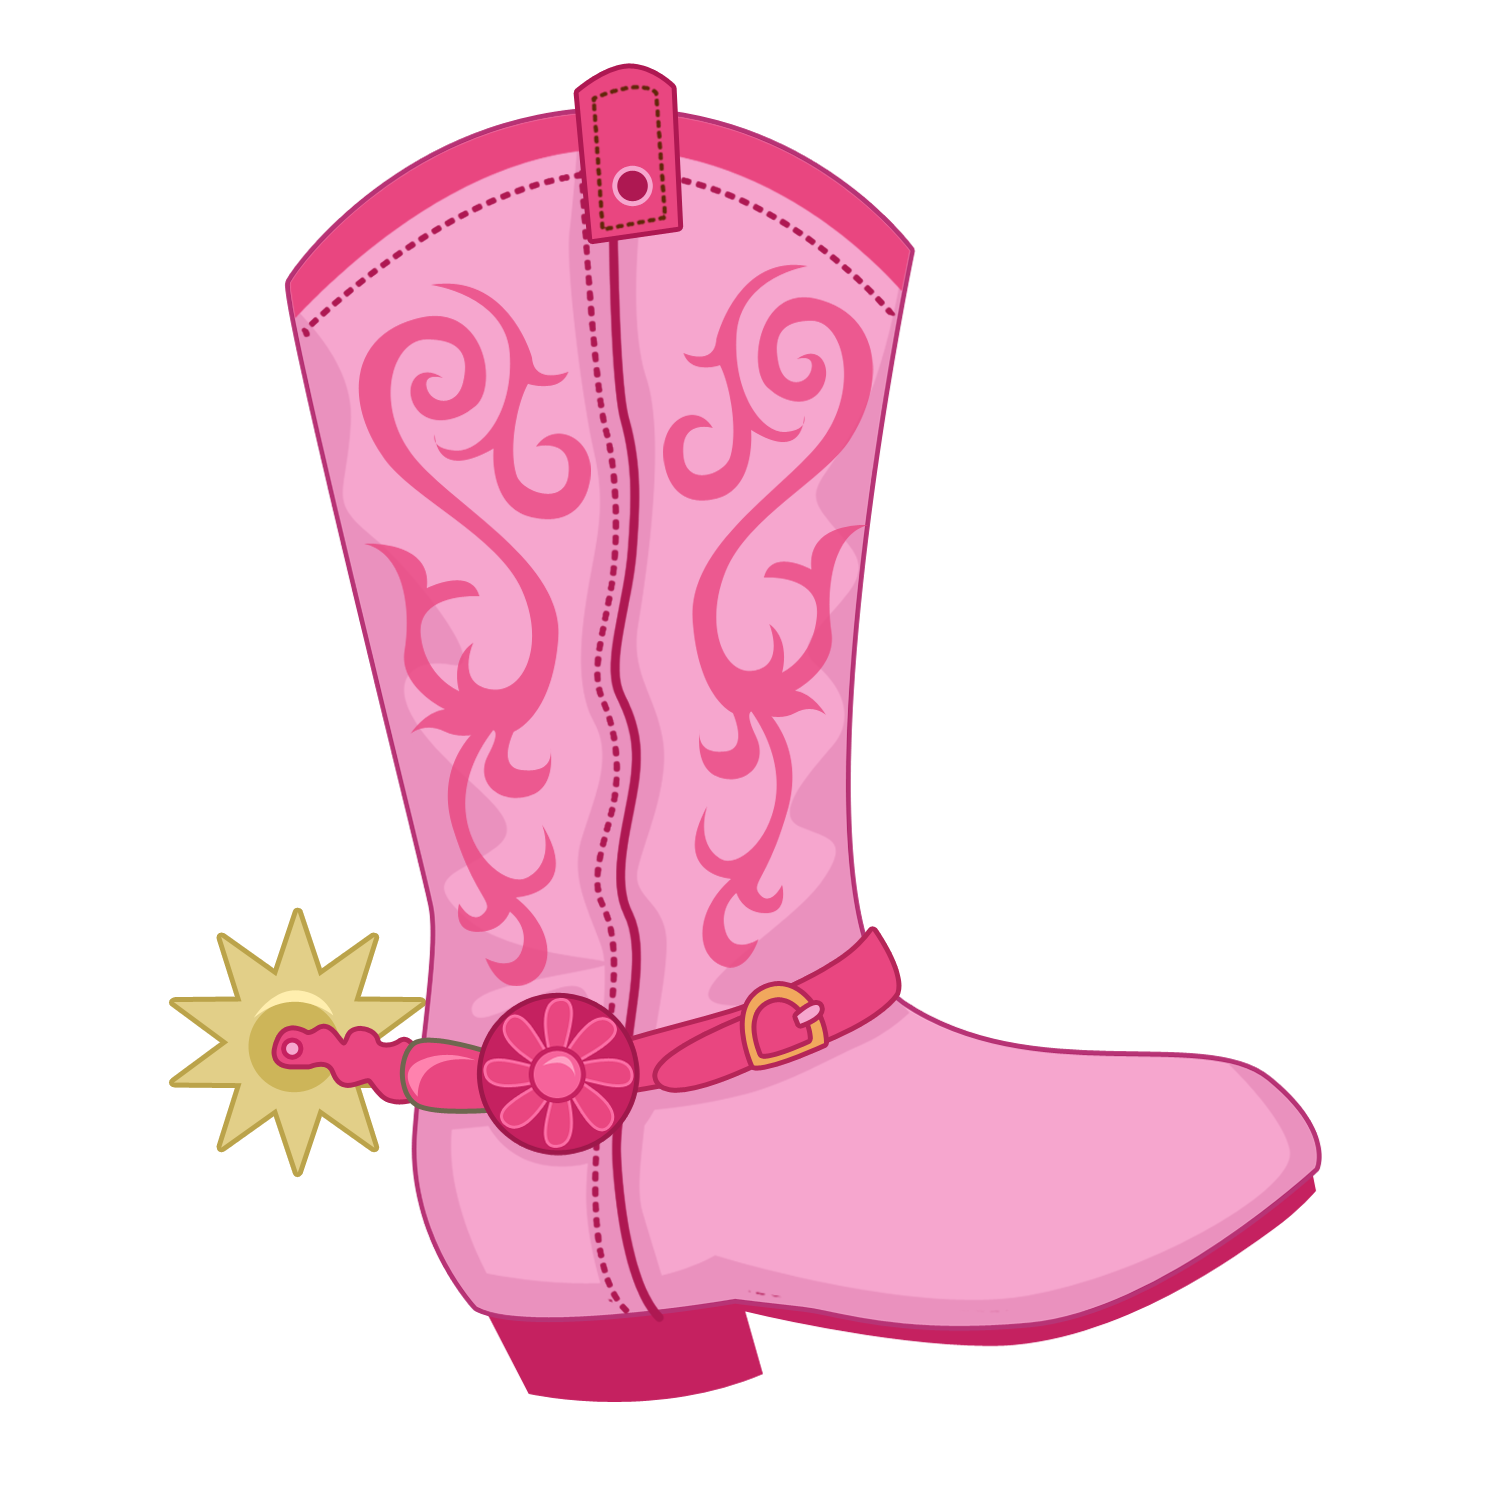 Cowgirl clipart brown cowboy boot. Photo by daniellemoraesfalcao minus